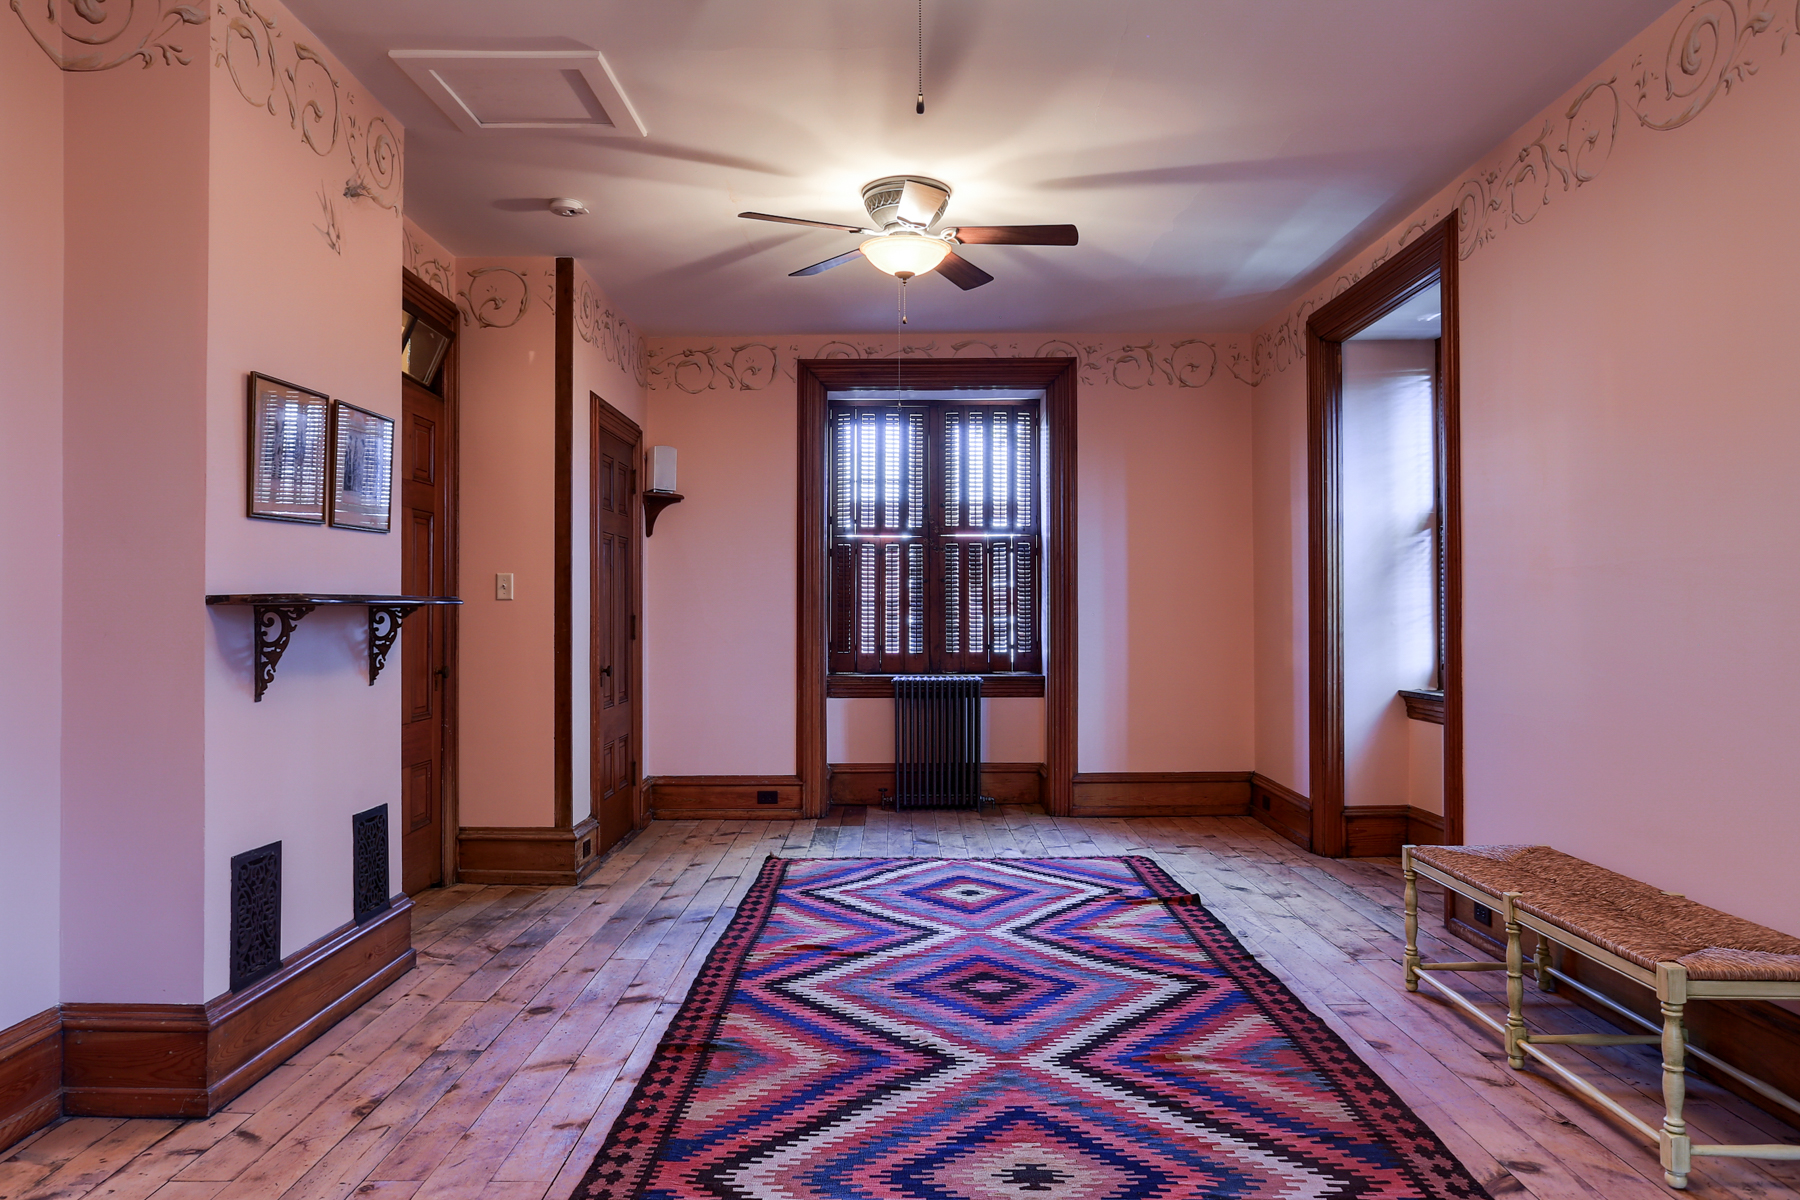 Additional photo for property listing at 106 South 2nd Street 106 South Second Street 哥伦比亚, 宾夕法尼亚州 17512 美国